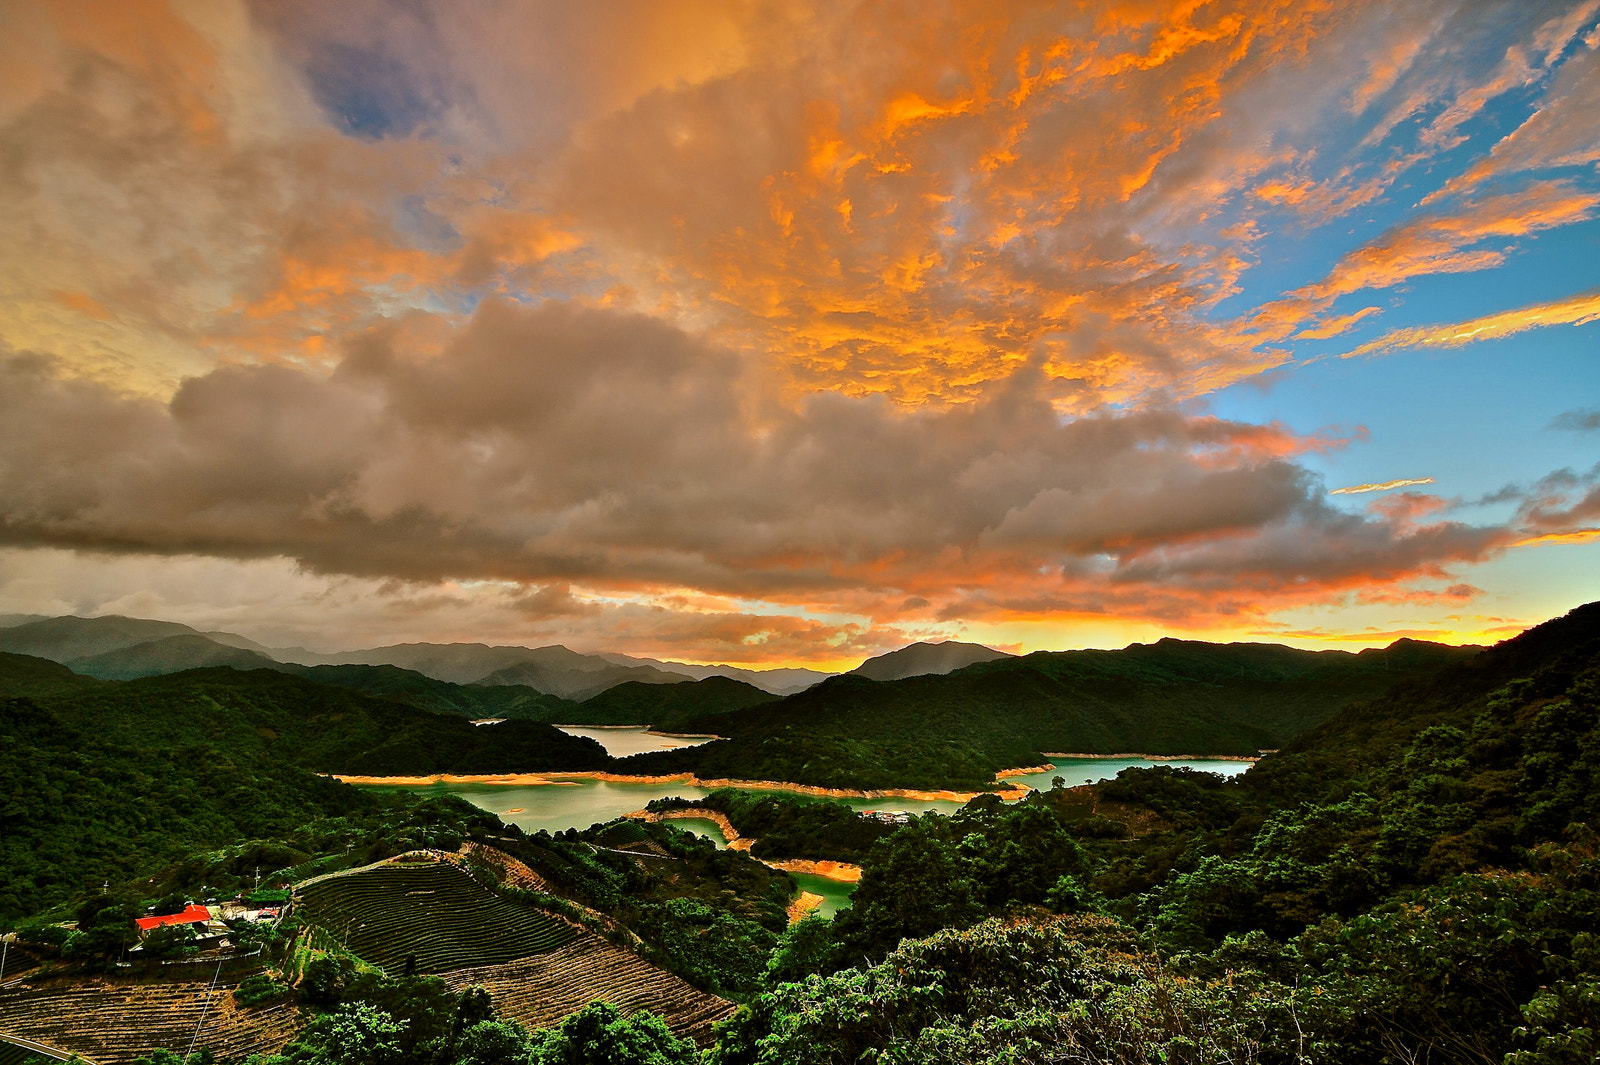 Photograph 夕燒潭腰 by chen benson on 500px